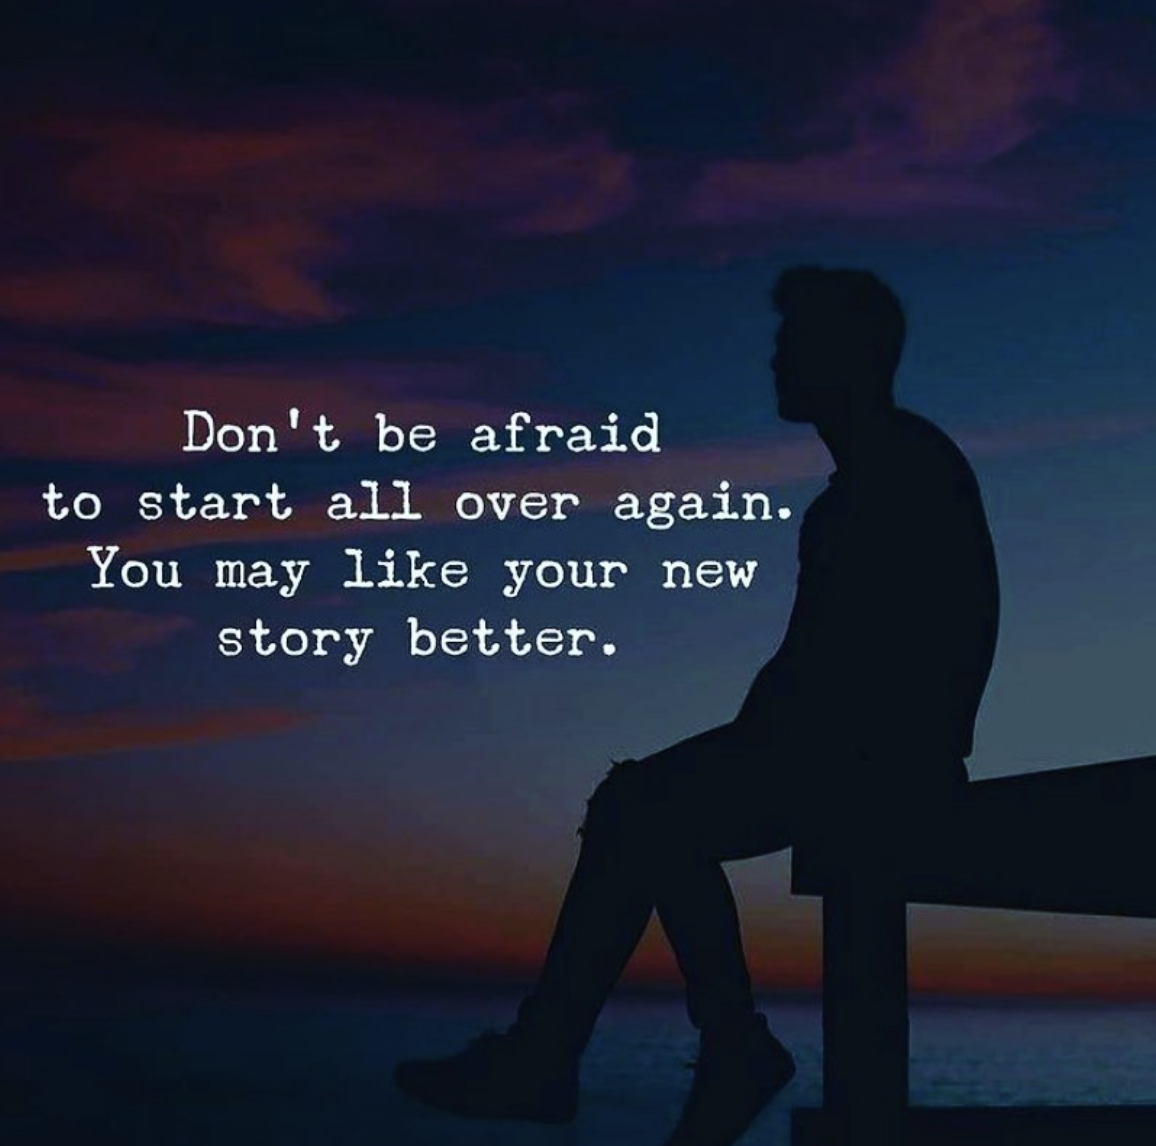 [Image] Don't be afraid to start all over again. You may like your new story better.